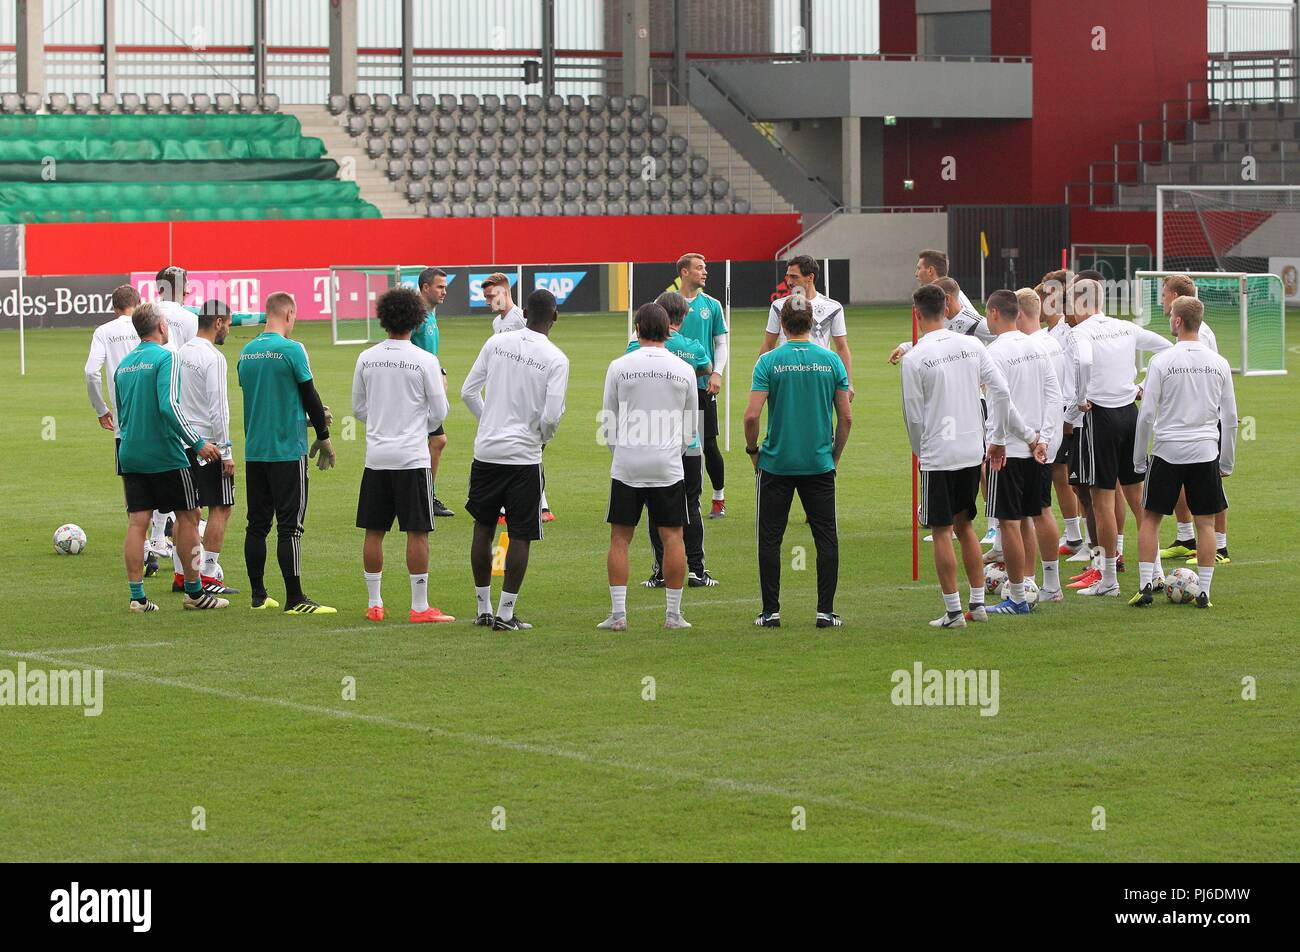 firo: 04.09.2018, Fuvuball, Football, National Team, Training, General, DFB, Germany | usage worldwide - Stock Image